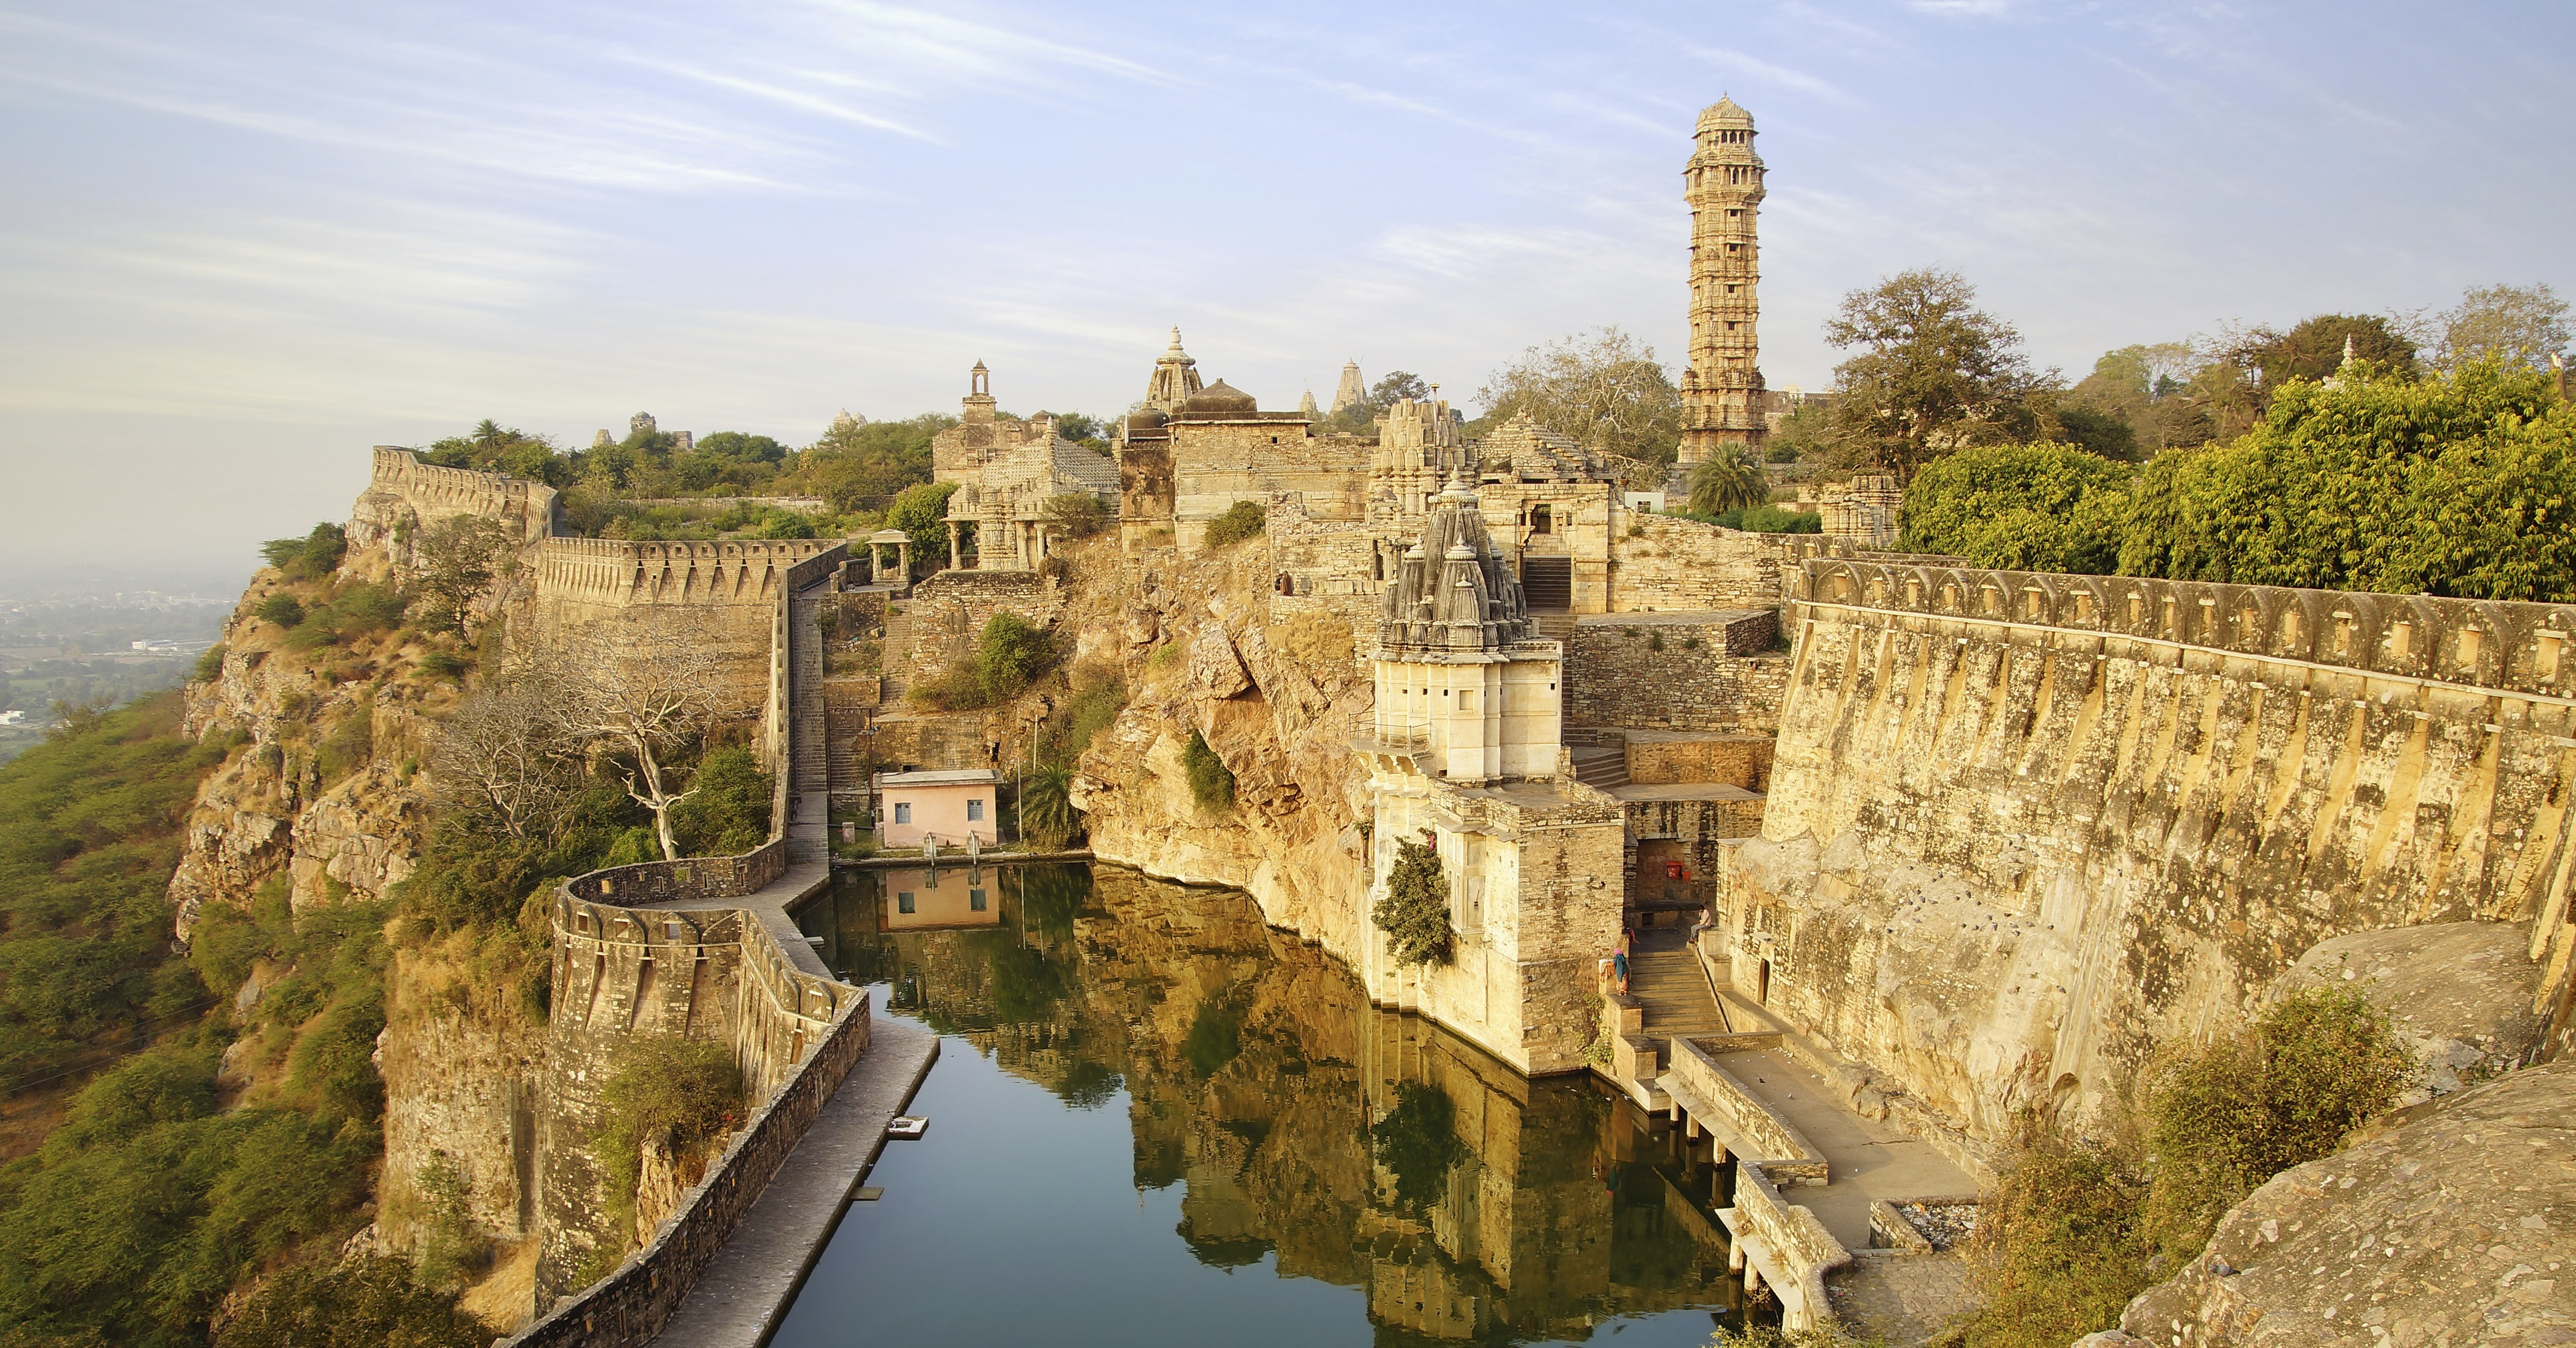 Chittorgarh Fort Chittorgarh Reviews Chittorgarh Fort Chittorgarh Guide Tourist Place